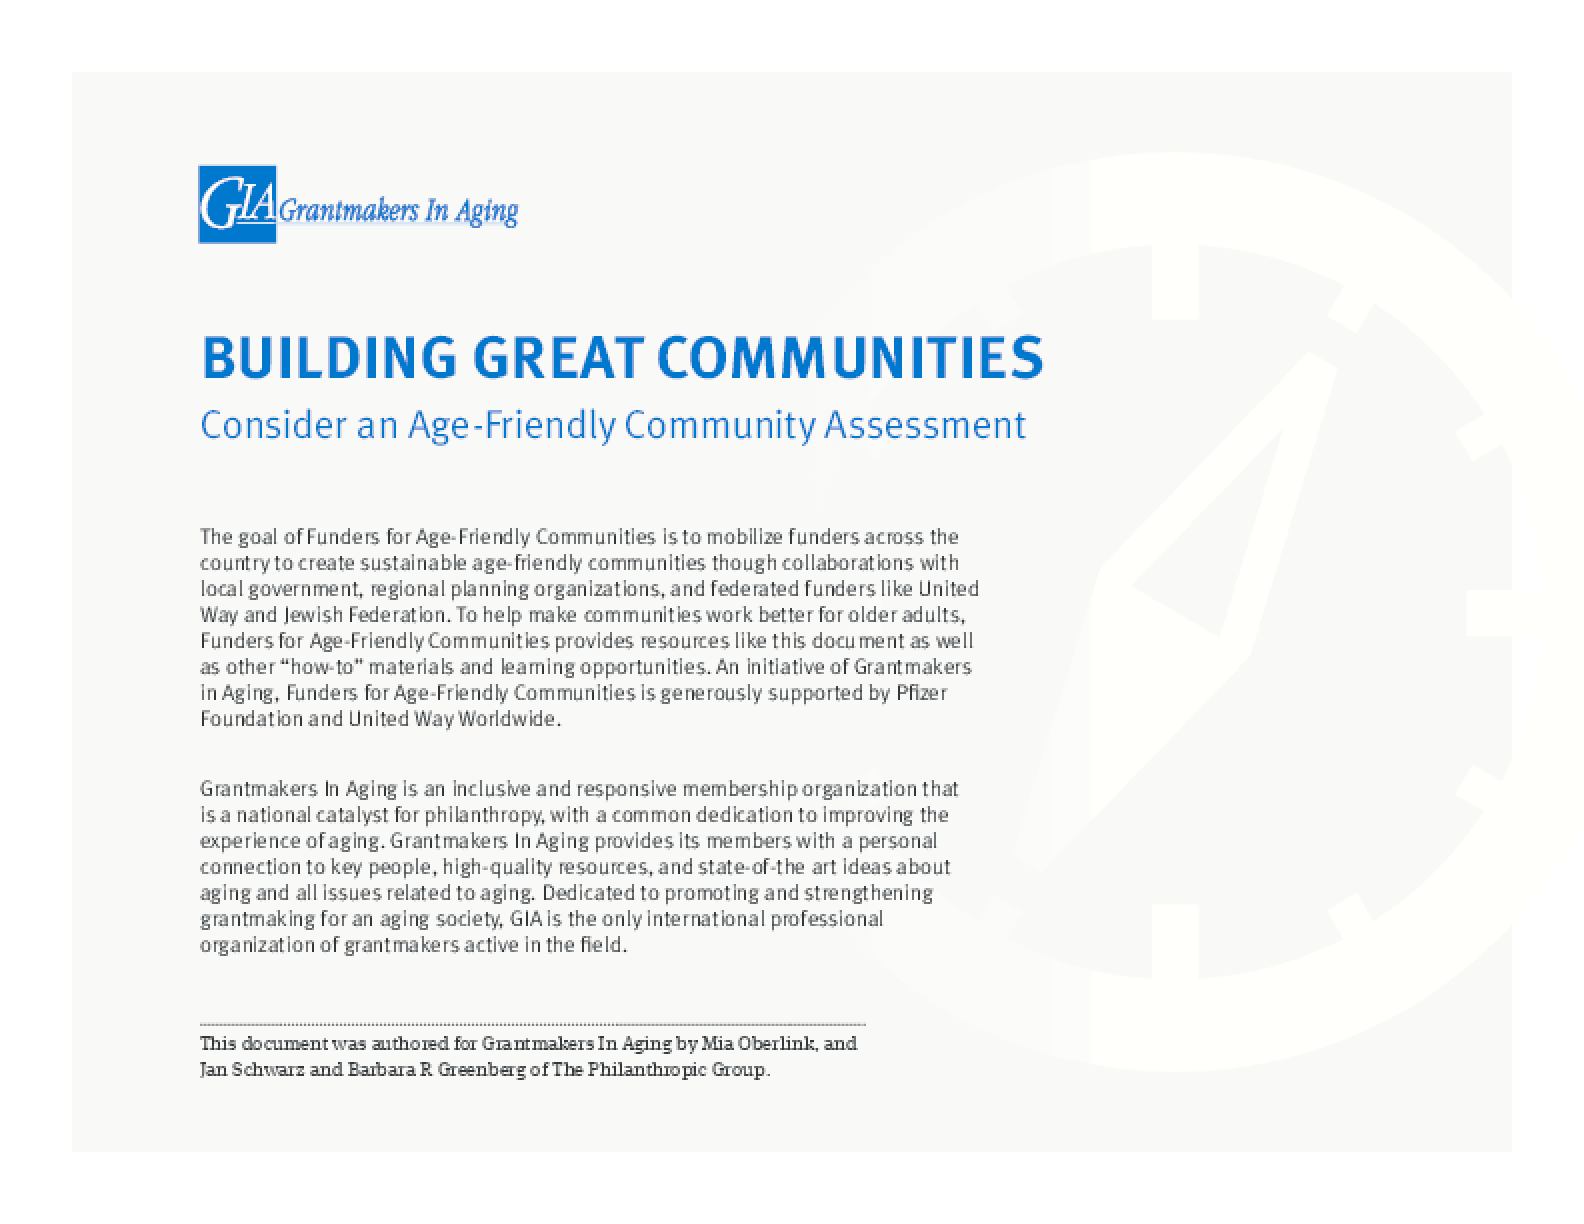 Building Great Communities: Consider an Age-Friendly Community Assessment